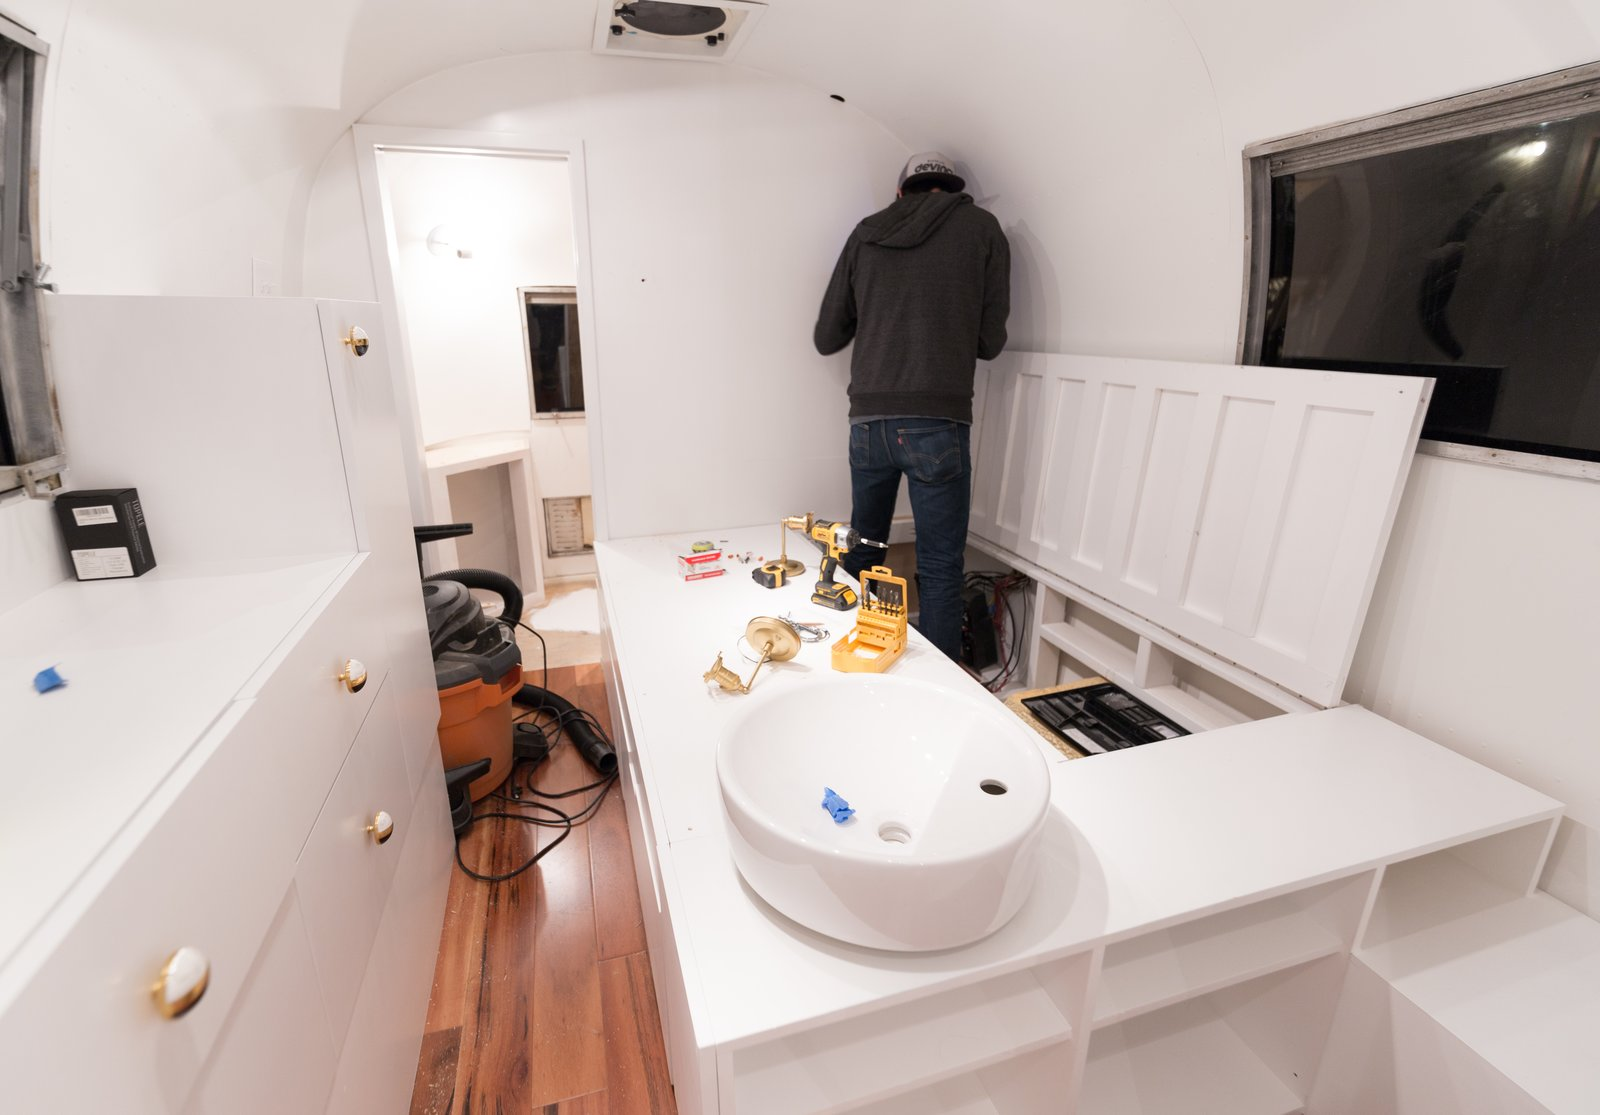 Photo 22 of 25 in See How an Oregon Couple Renovated Their 1966 Airstream